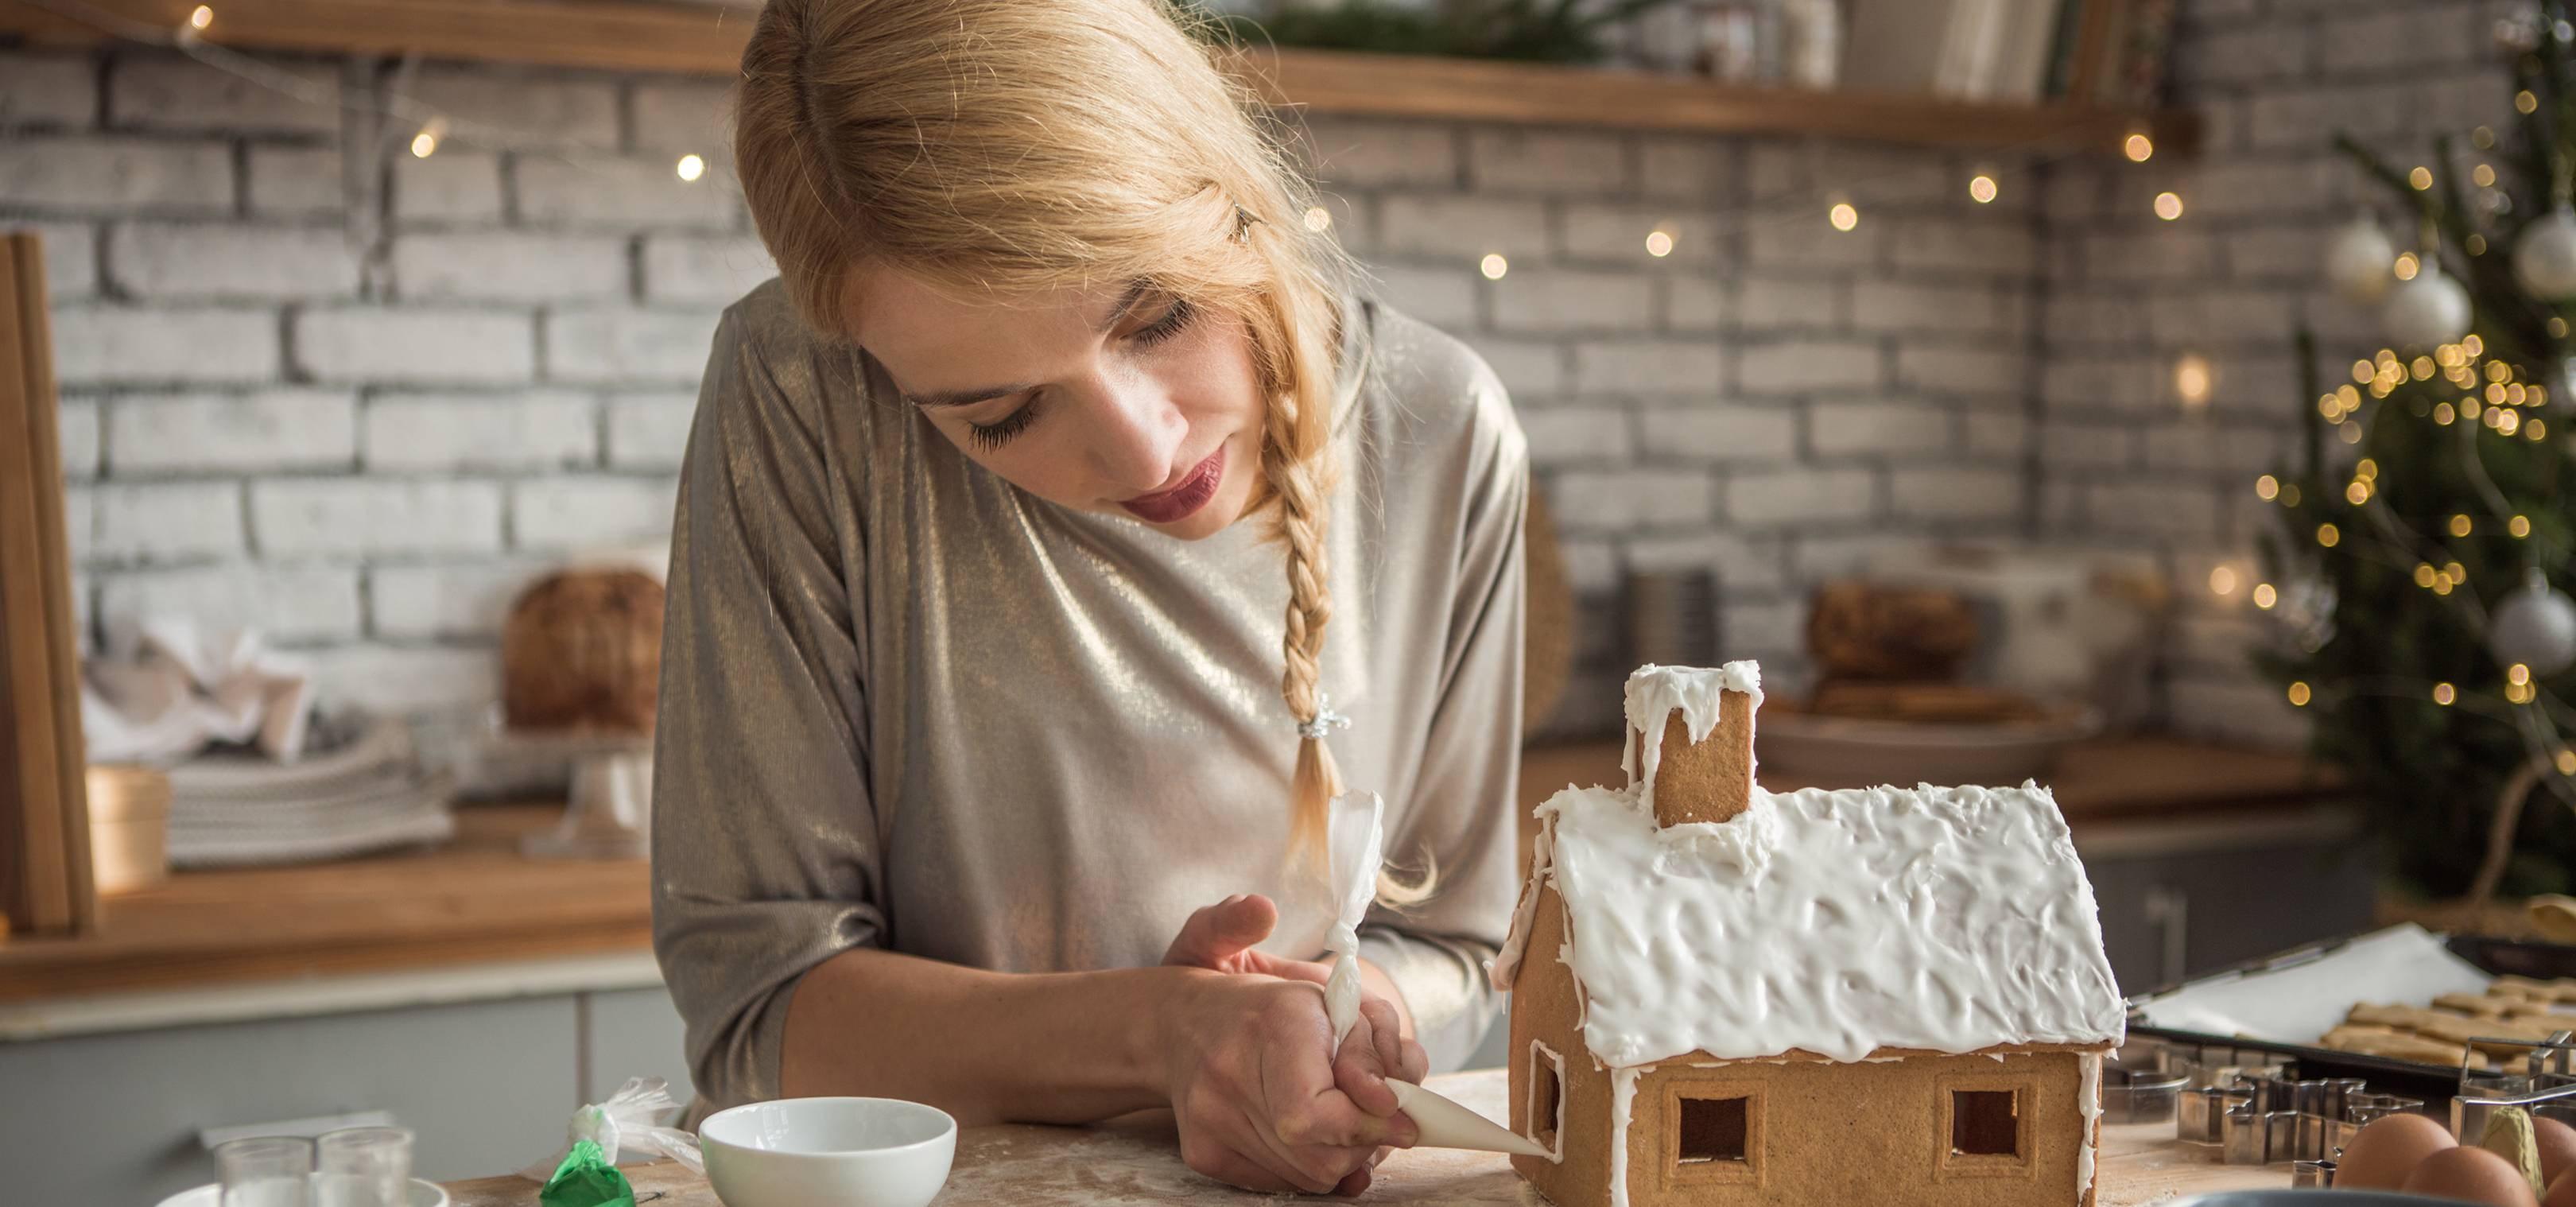 Can't wait for Christmas? Here are 10 fun festive things you can do at home to get you in the holiday spirit